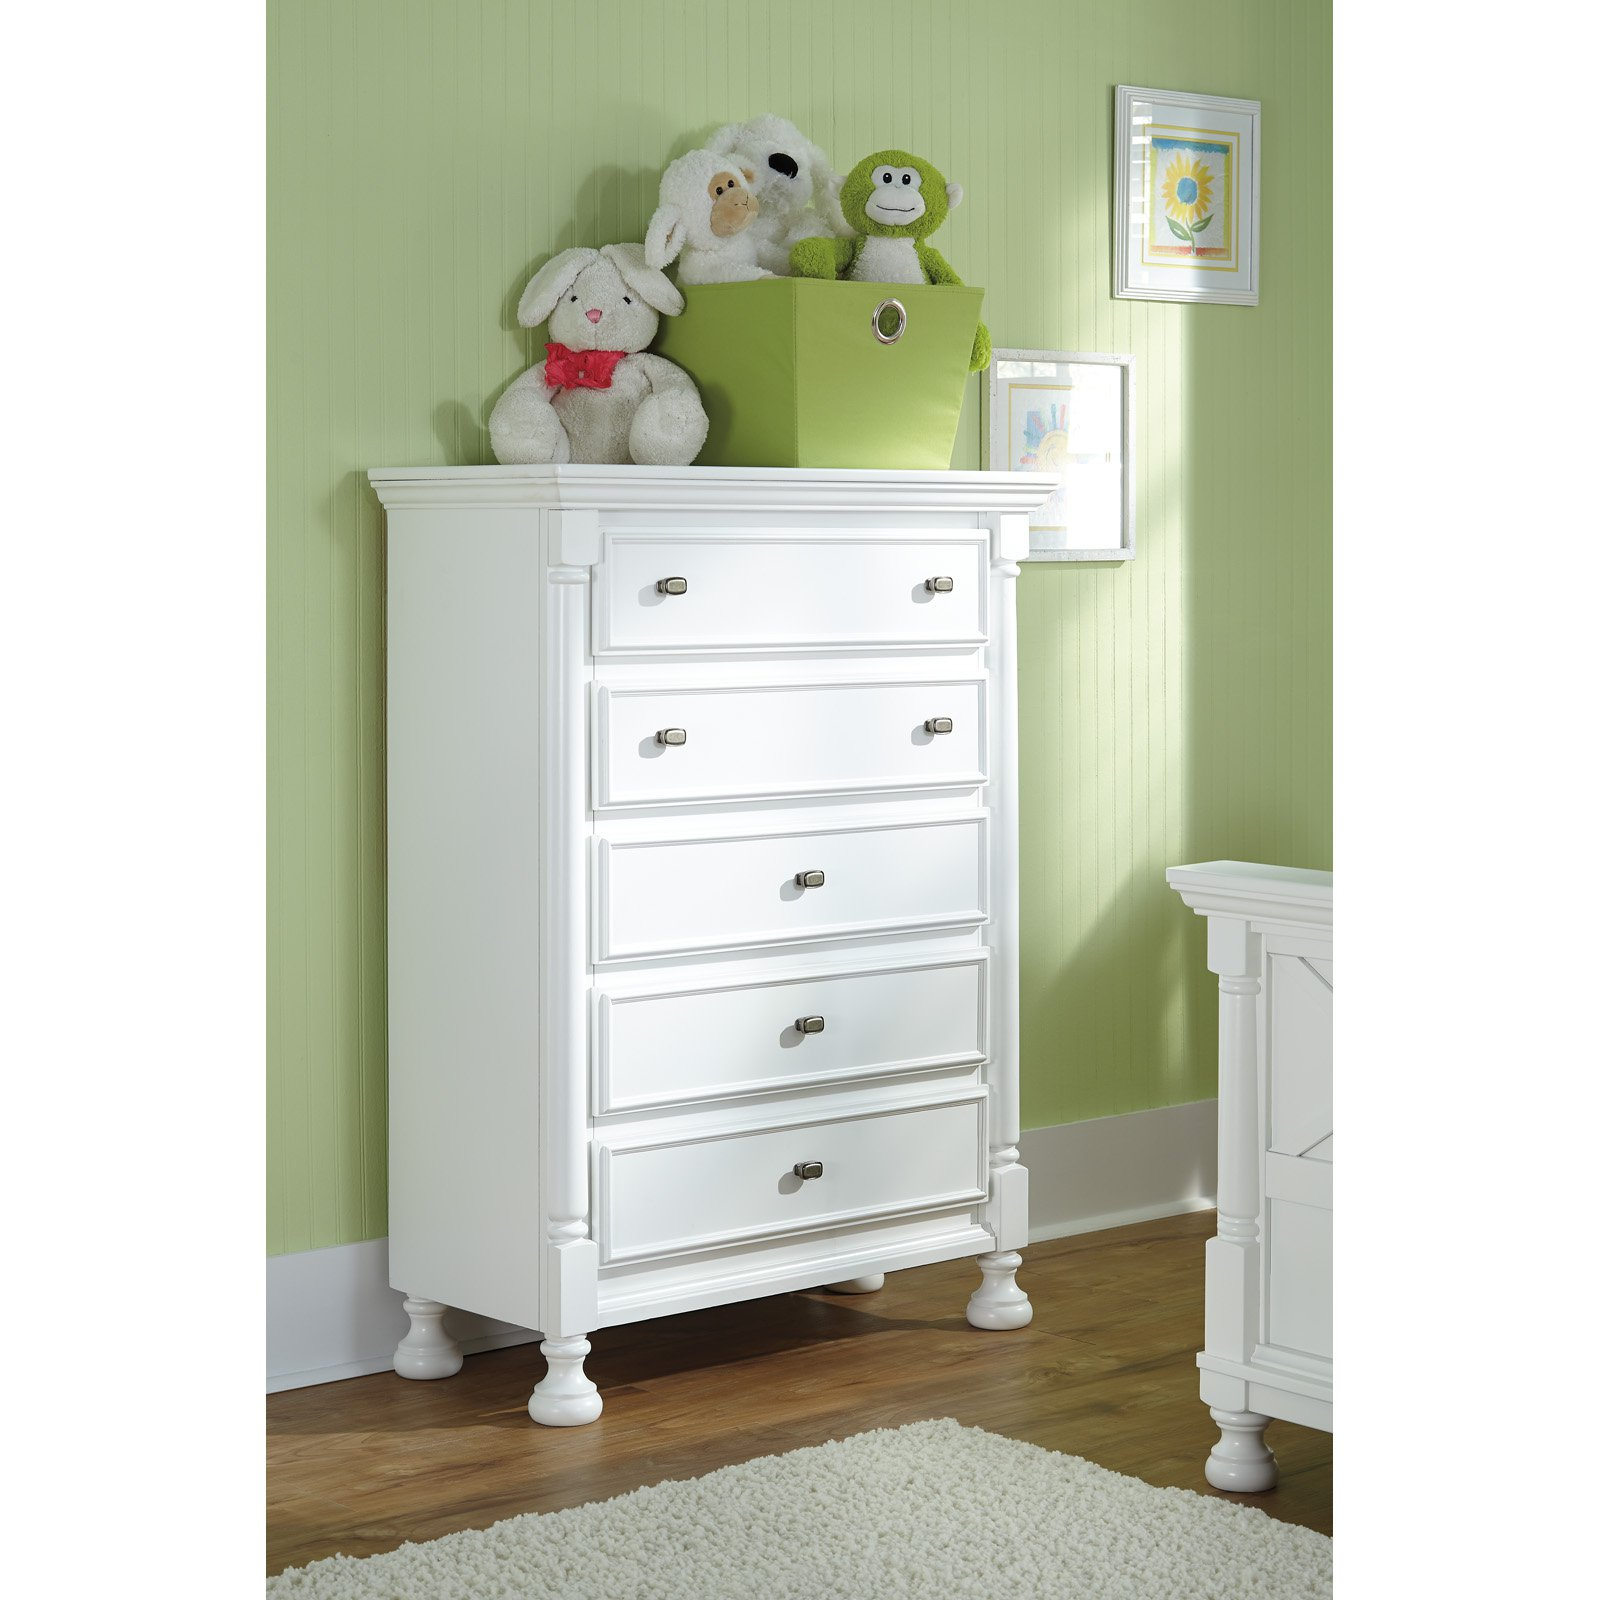 Signature Design by Ashley Kaslyn 5 Drawer Chest